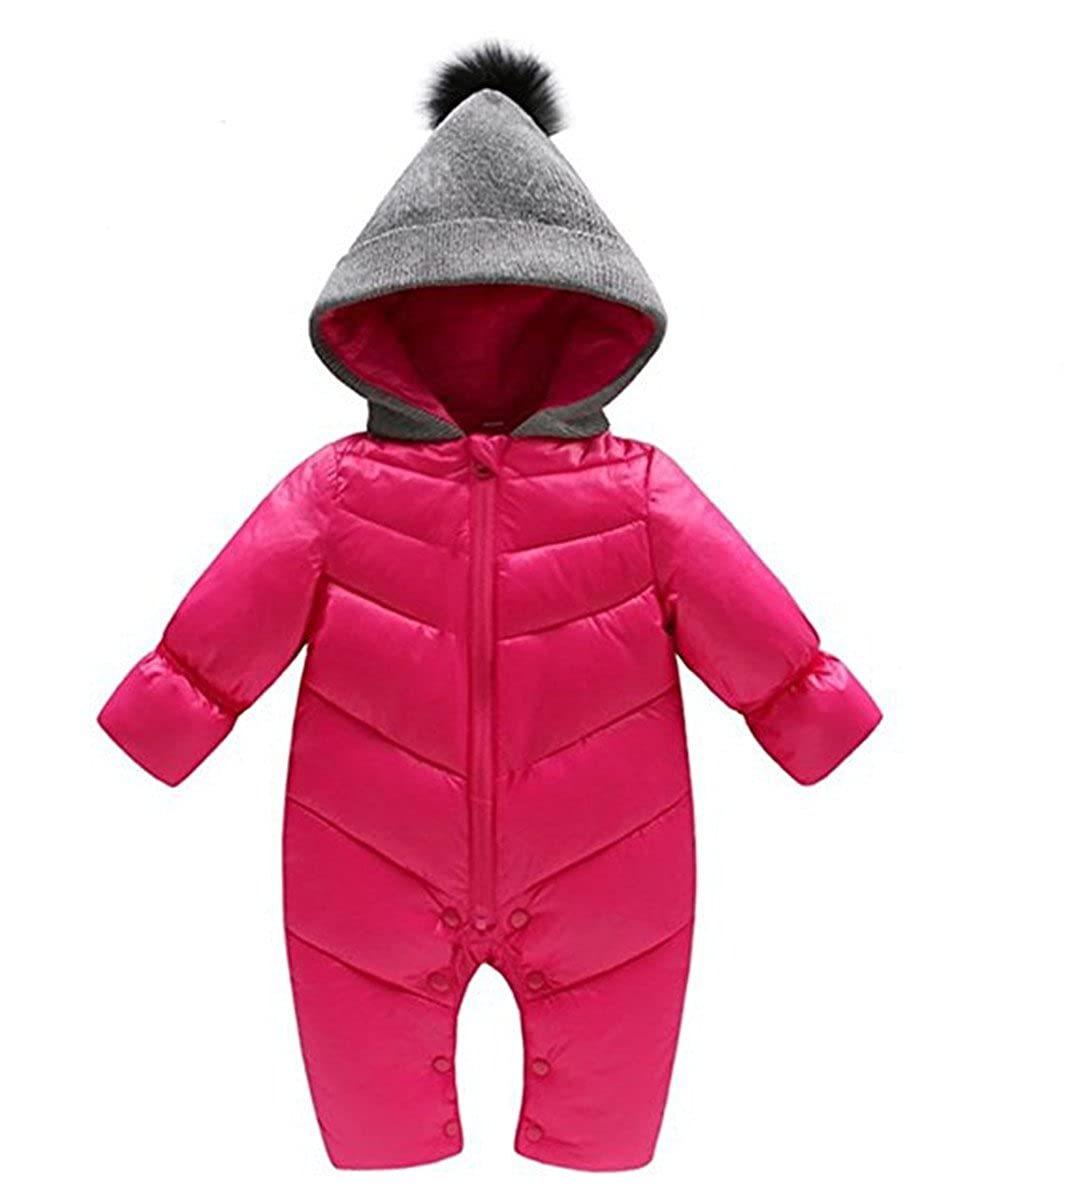 JELEUON Baby Girls Boys One Piece Winter Warm Hoodie Romper Snowsuit Jumpsuit